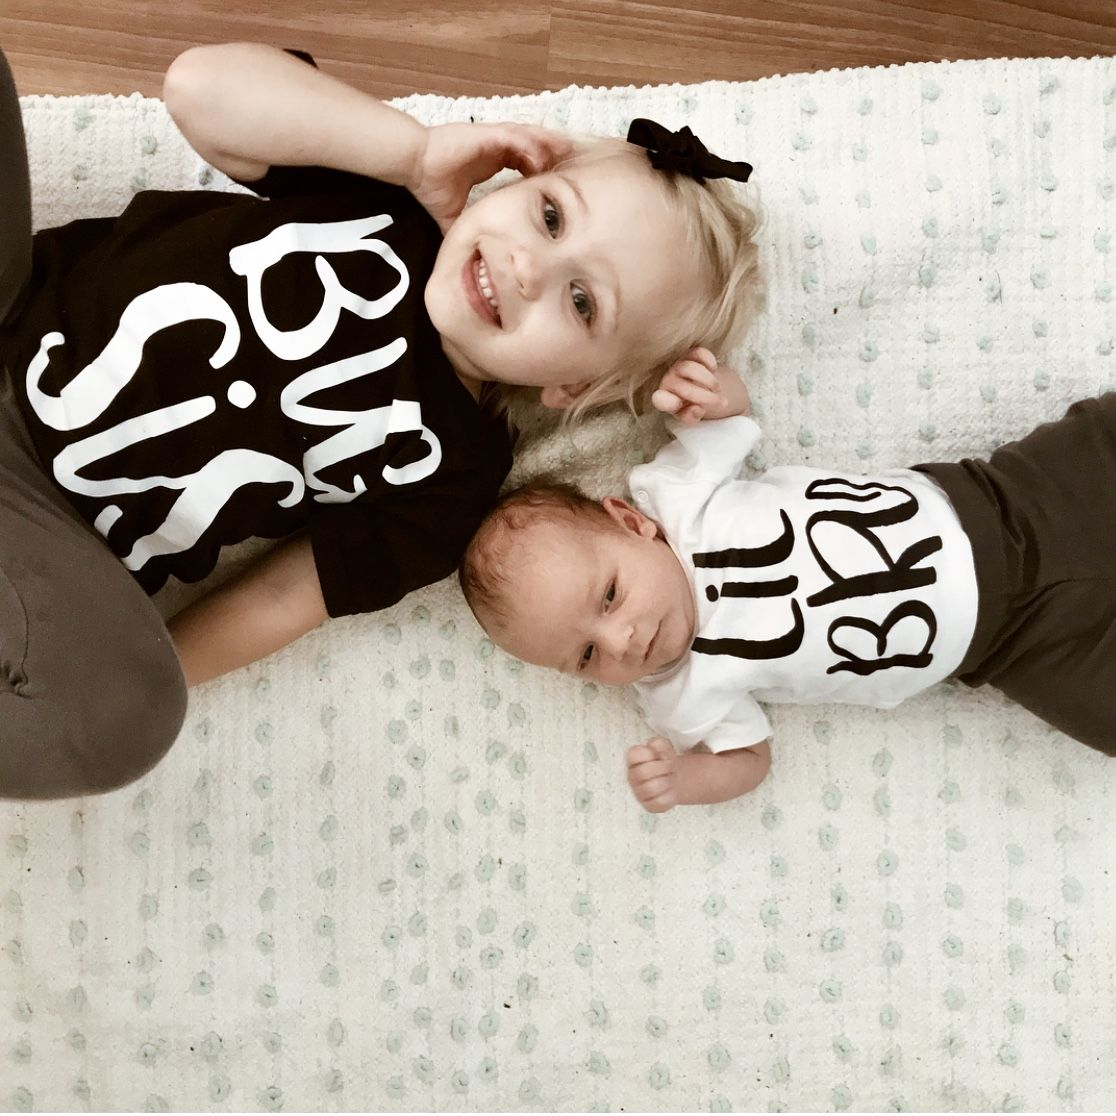 Big Sis And Lil Bro Brother And Sister Family Look Tshirt And Rompers Kids Baby Matching Tshirt White Black Casual Matching Tops